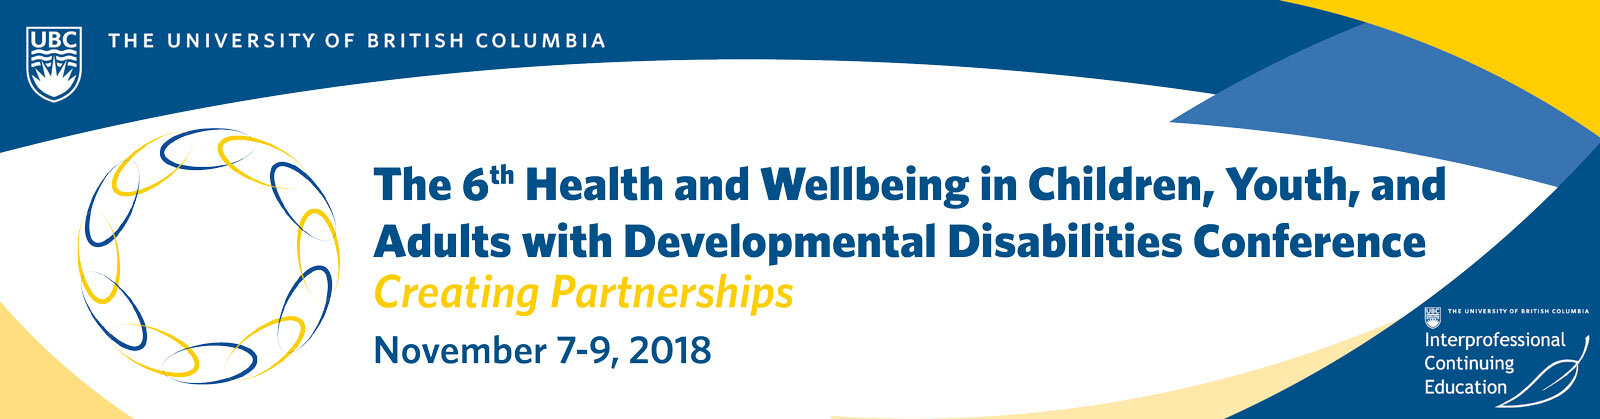 2018 Health and Wellbeing in Children, Youth, and Adults with Developmental Disabilities